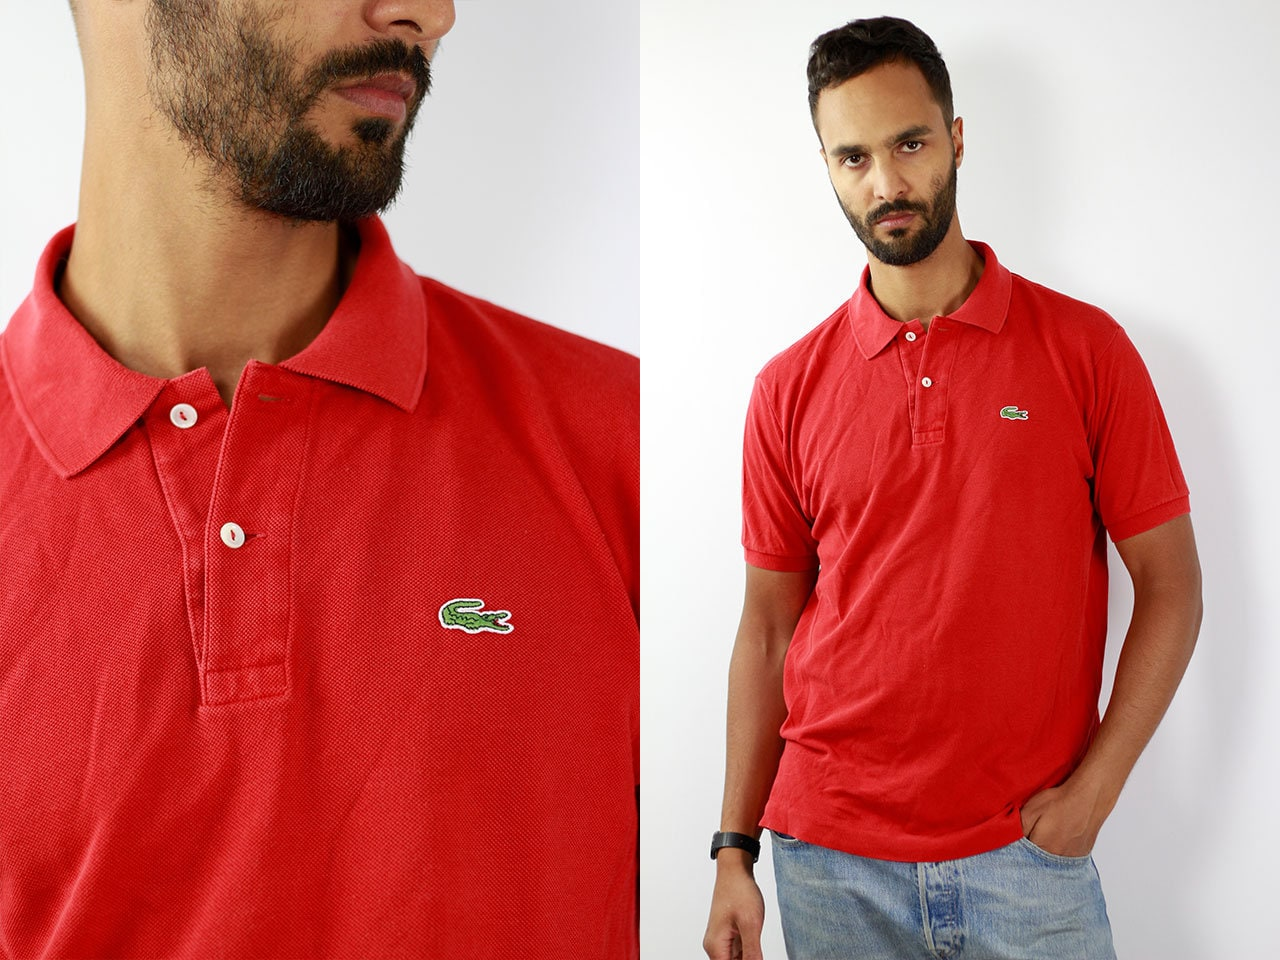 Lacoste Poloshirt Red Poloshirt Lacoste Polo Shirt Vintage Lacoste